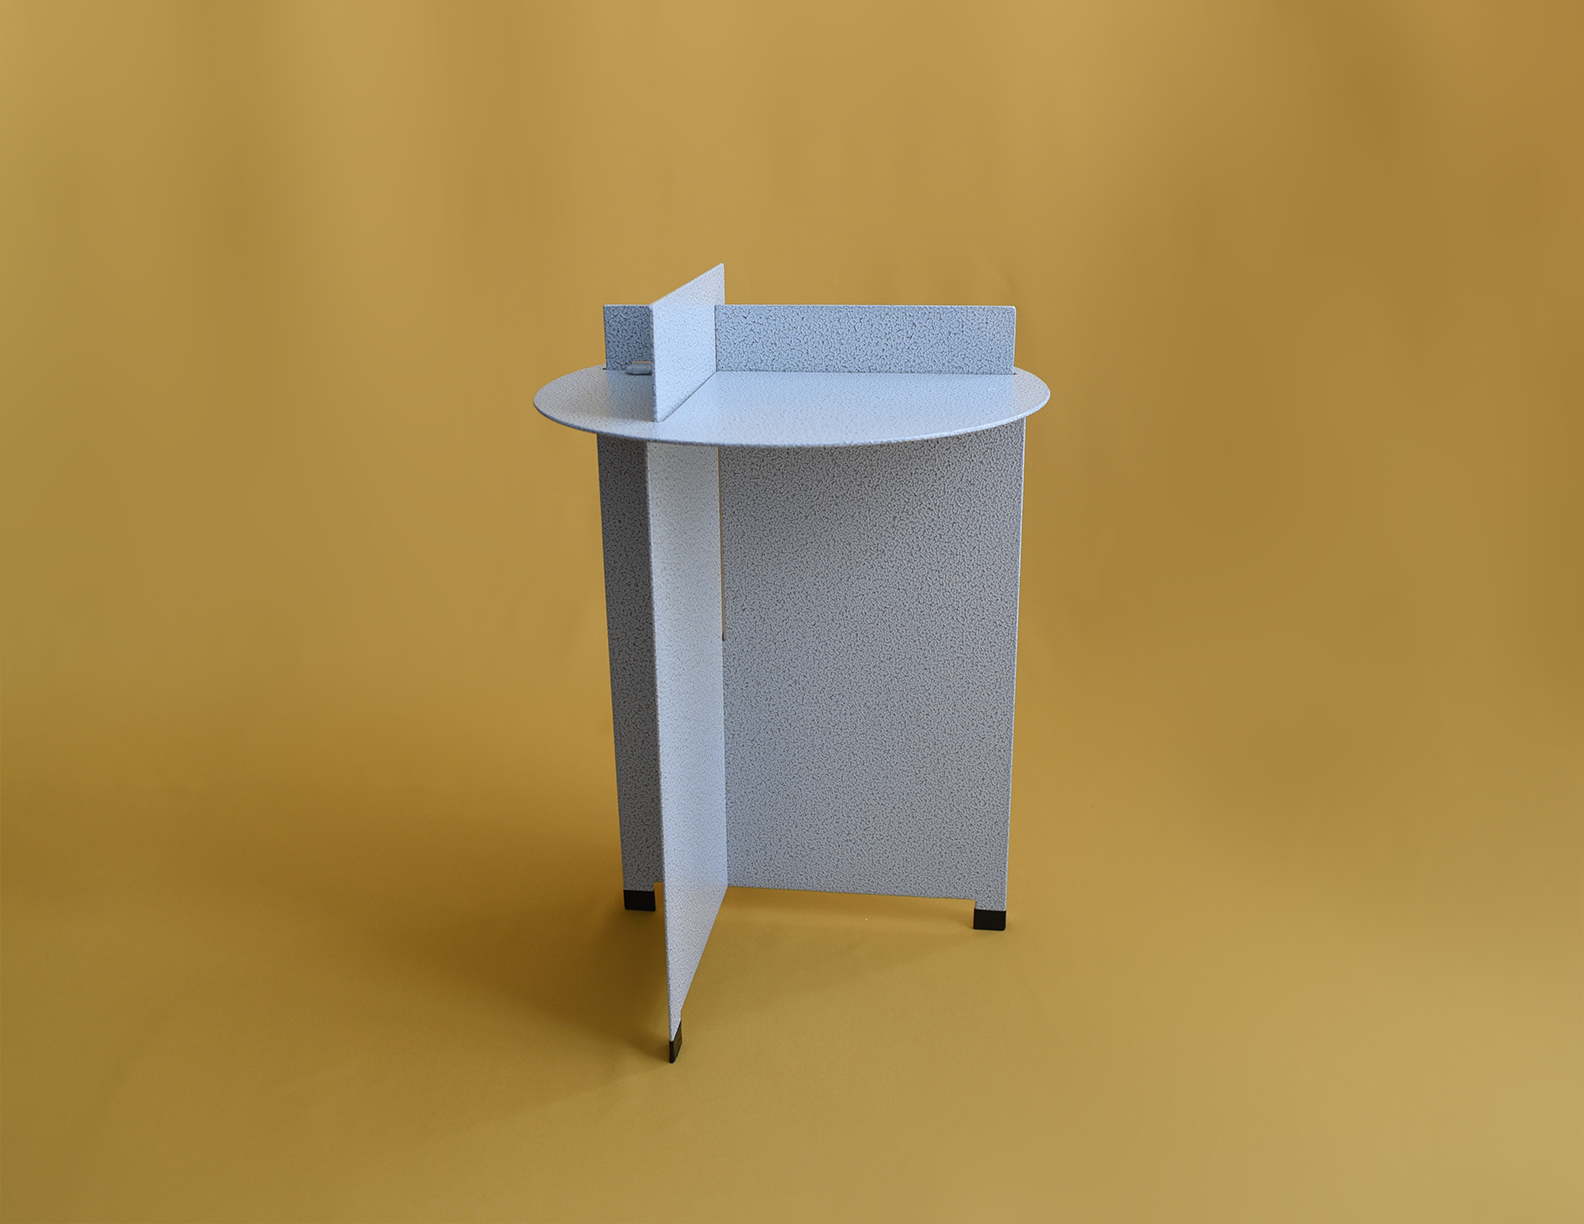 fink side table yellow background.png